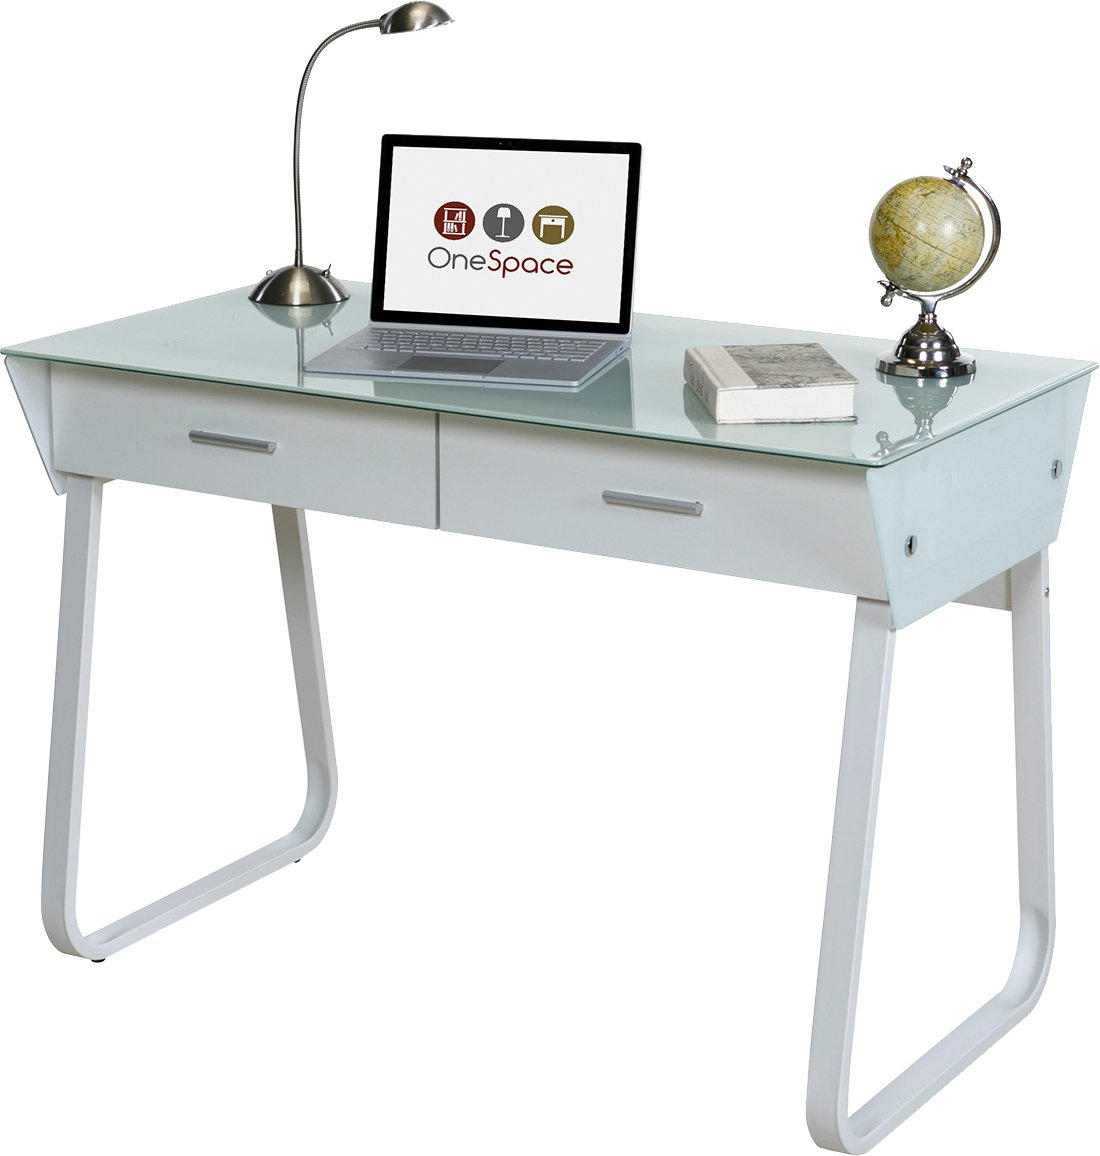 modern full glass desk. Amazon.com: OneSpace Ultramodern Glass Computer Desk With Drawers, White: Kitchen \u0026 Dining Modern Full